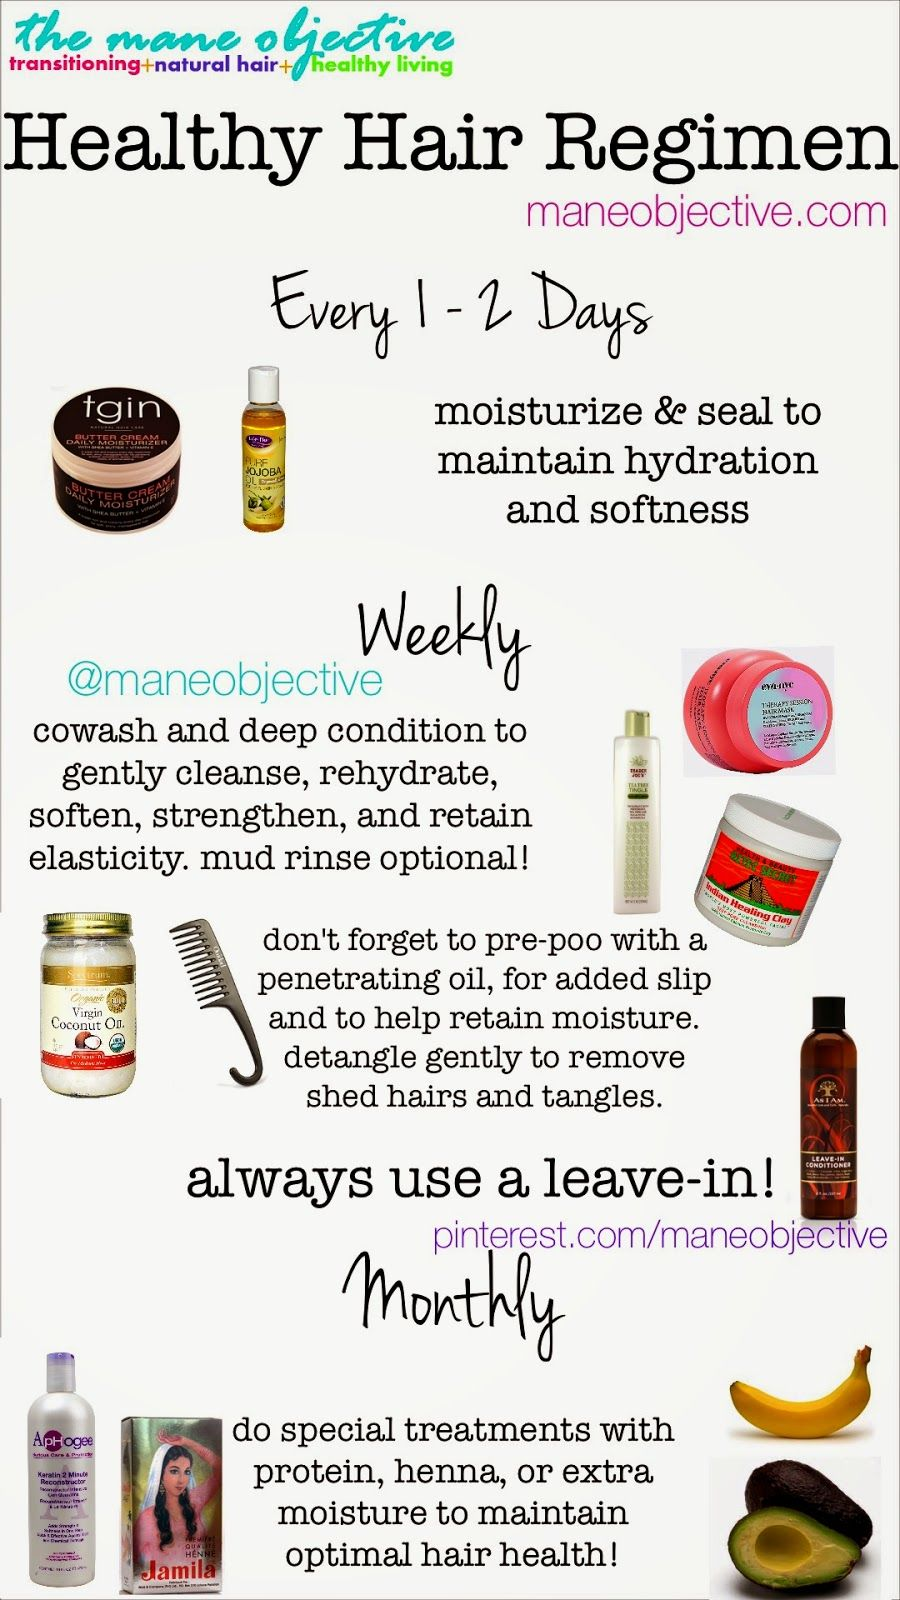 How To Take Care Of Hair After Temporary Straightening And Keep It